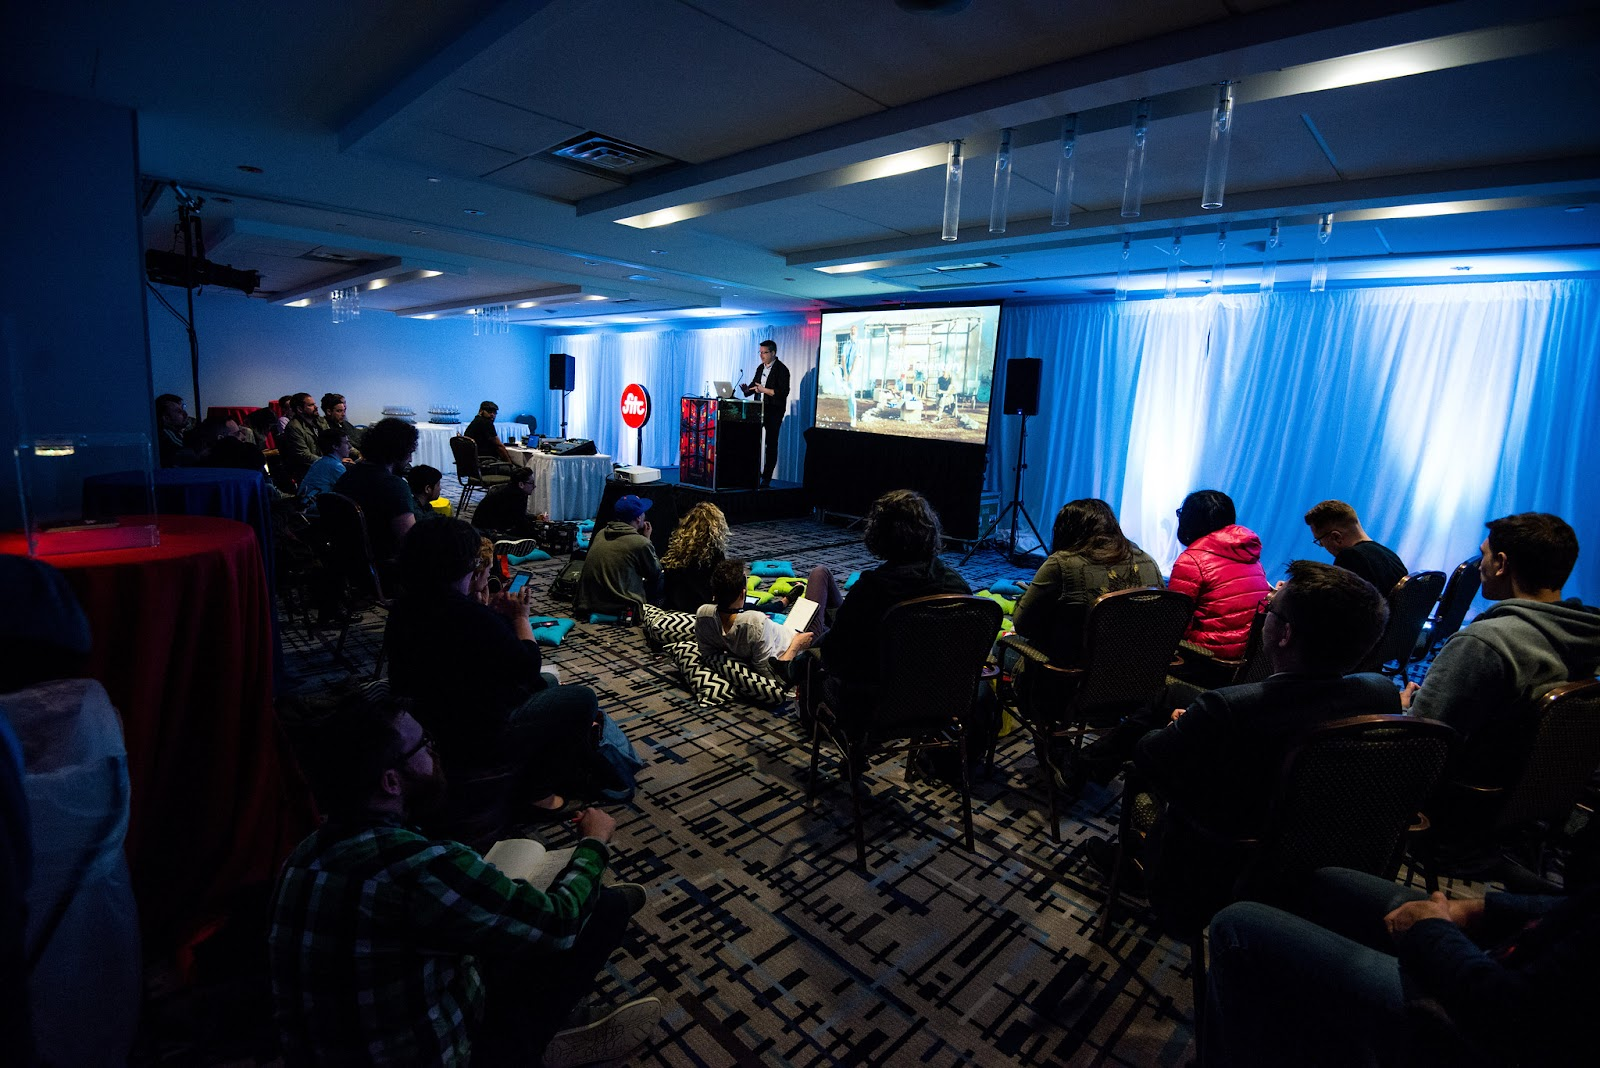 Kurt Krumme presenting at the FITC conference in Toronto.